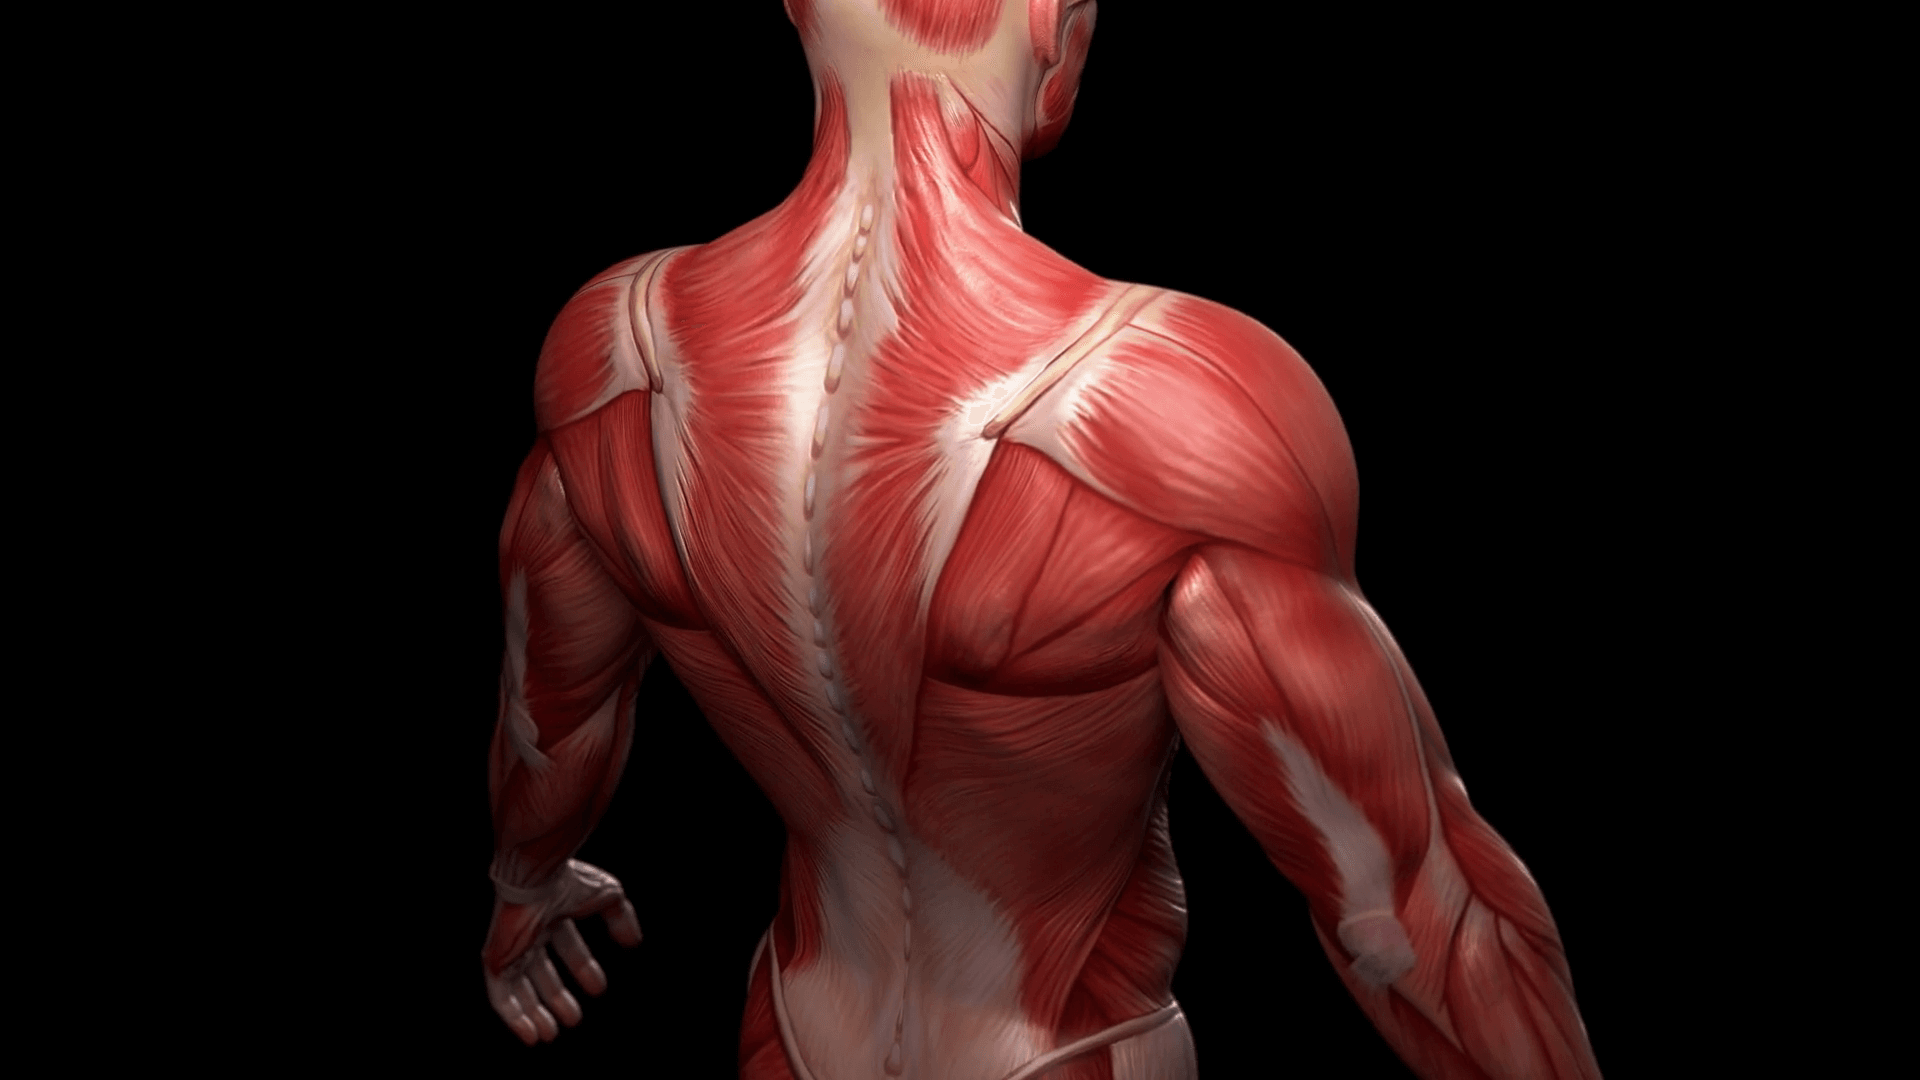 Human muscles from stem cells: Advance could aid research into muscular dystrophy, other ...